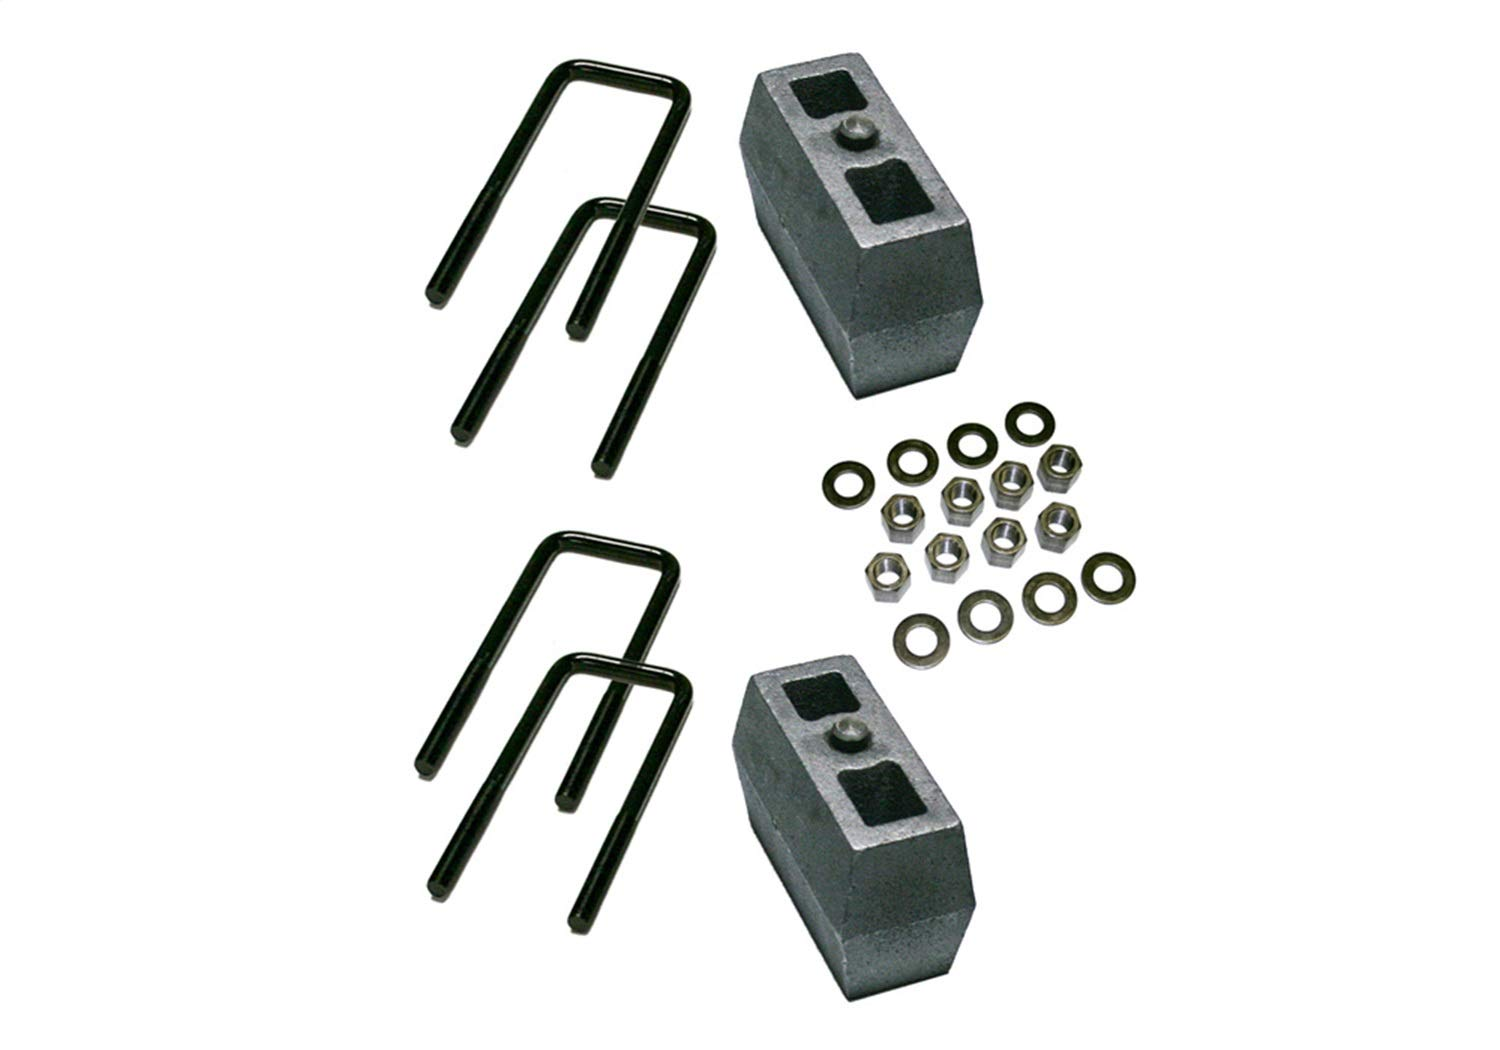 Superlift Suspension 7149 4 inch Block Kit-1979-1995 Toyota Pickup 1979-1986 4Runner 4WD-with 2.5 inch Wide Ubolts